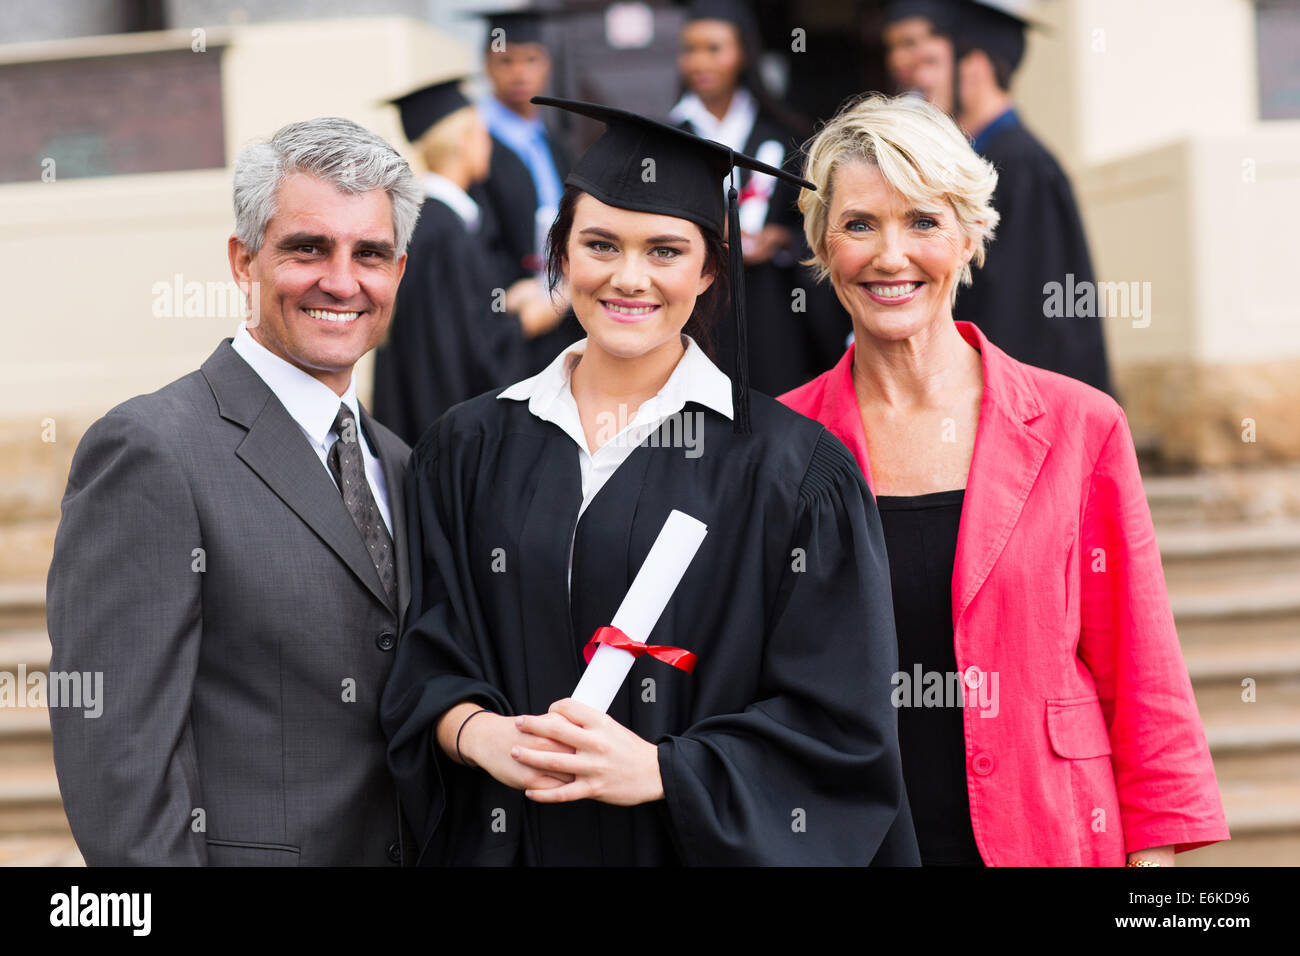 pretty young graduate with happy parents at graduation ceremony - Stock Image